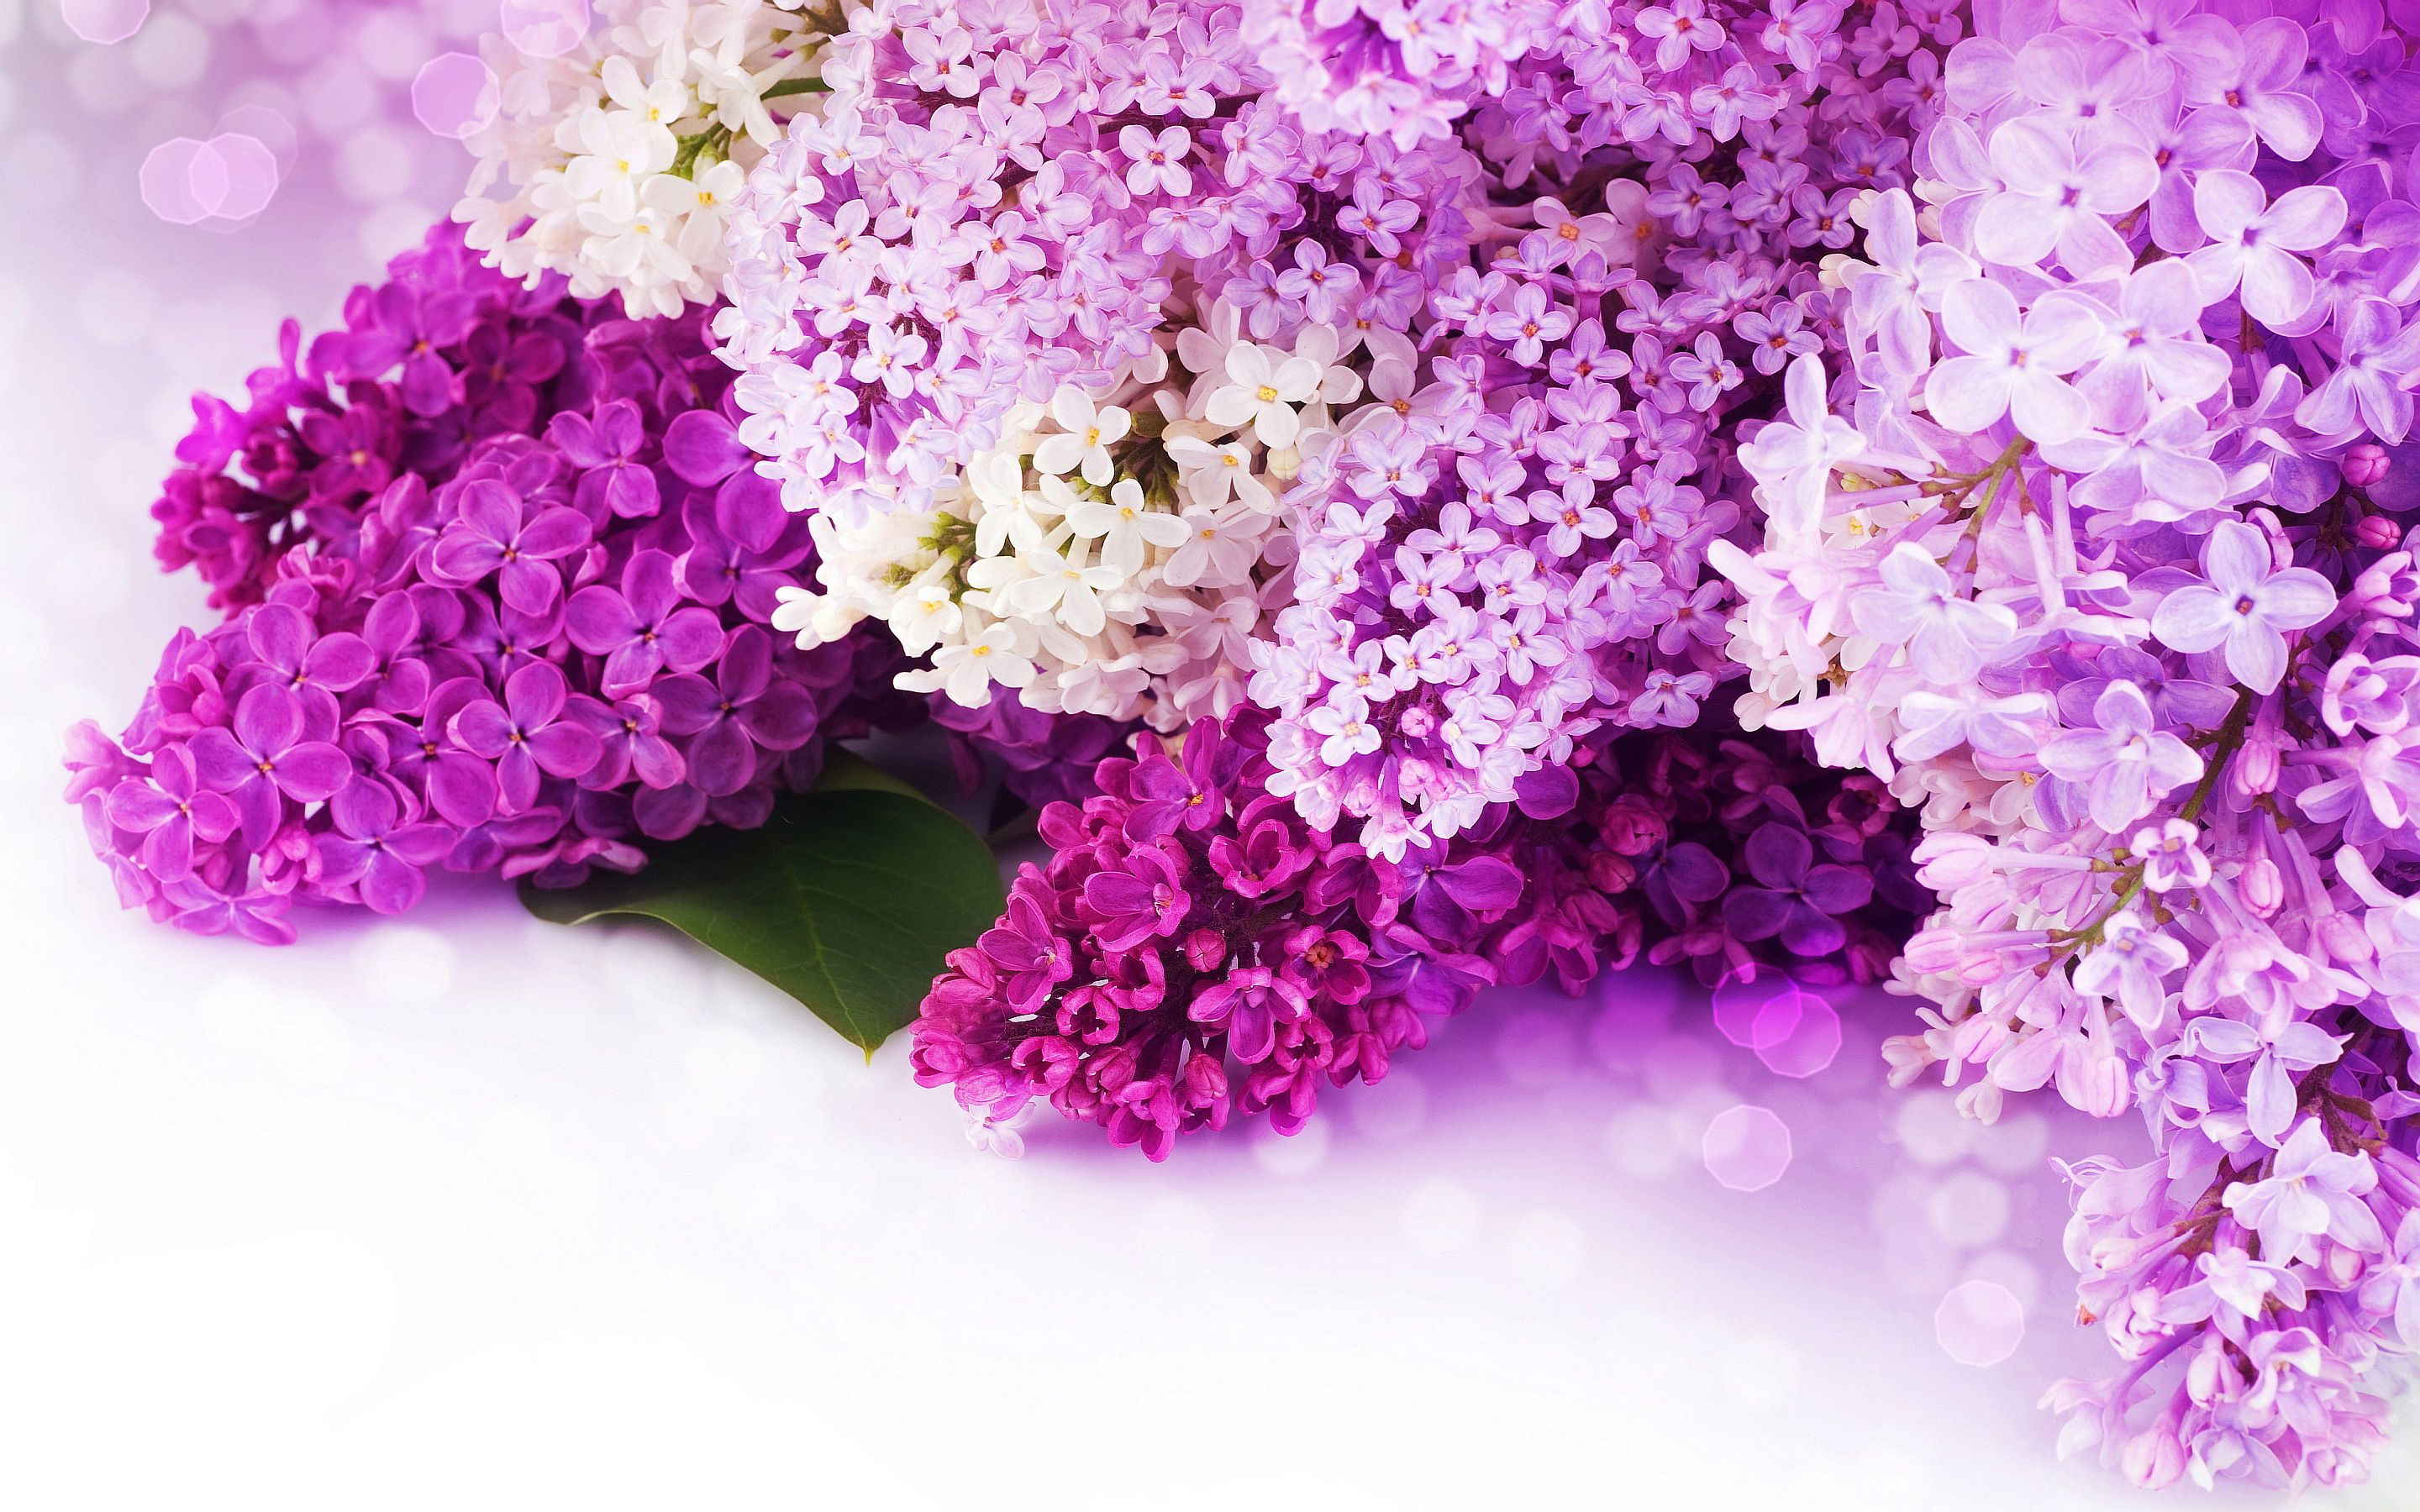 Lilac Purple Flowers 6954376 Pink And Purple Flowers Purple Flower Background Purple Flowers Wallpaper